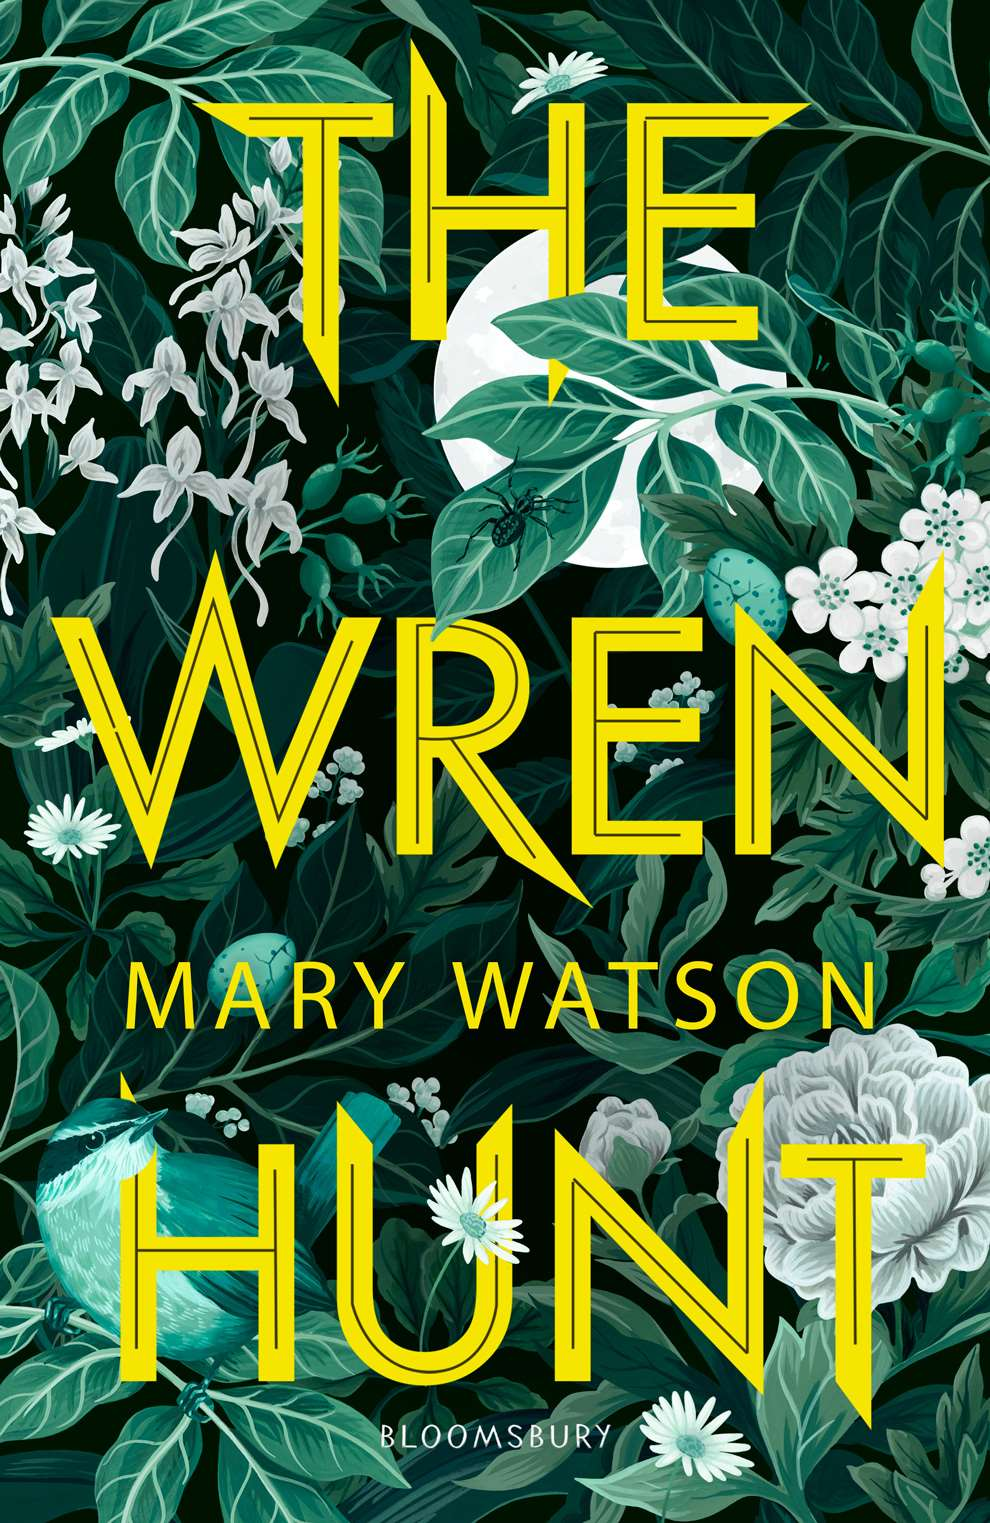 Charlotte Day, The Wren Hunt botanical book cover design, with painterly botanical background.